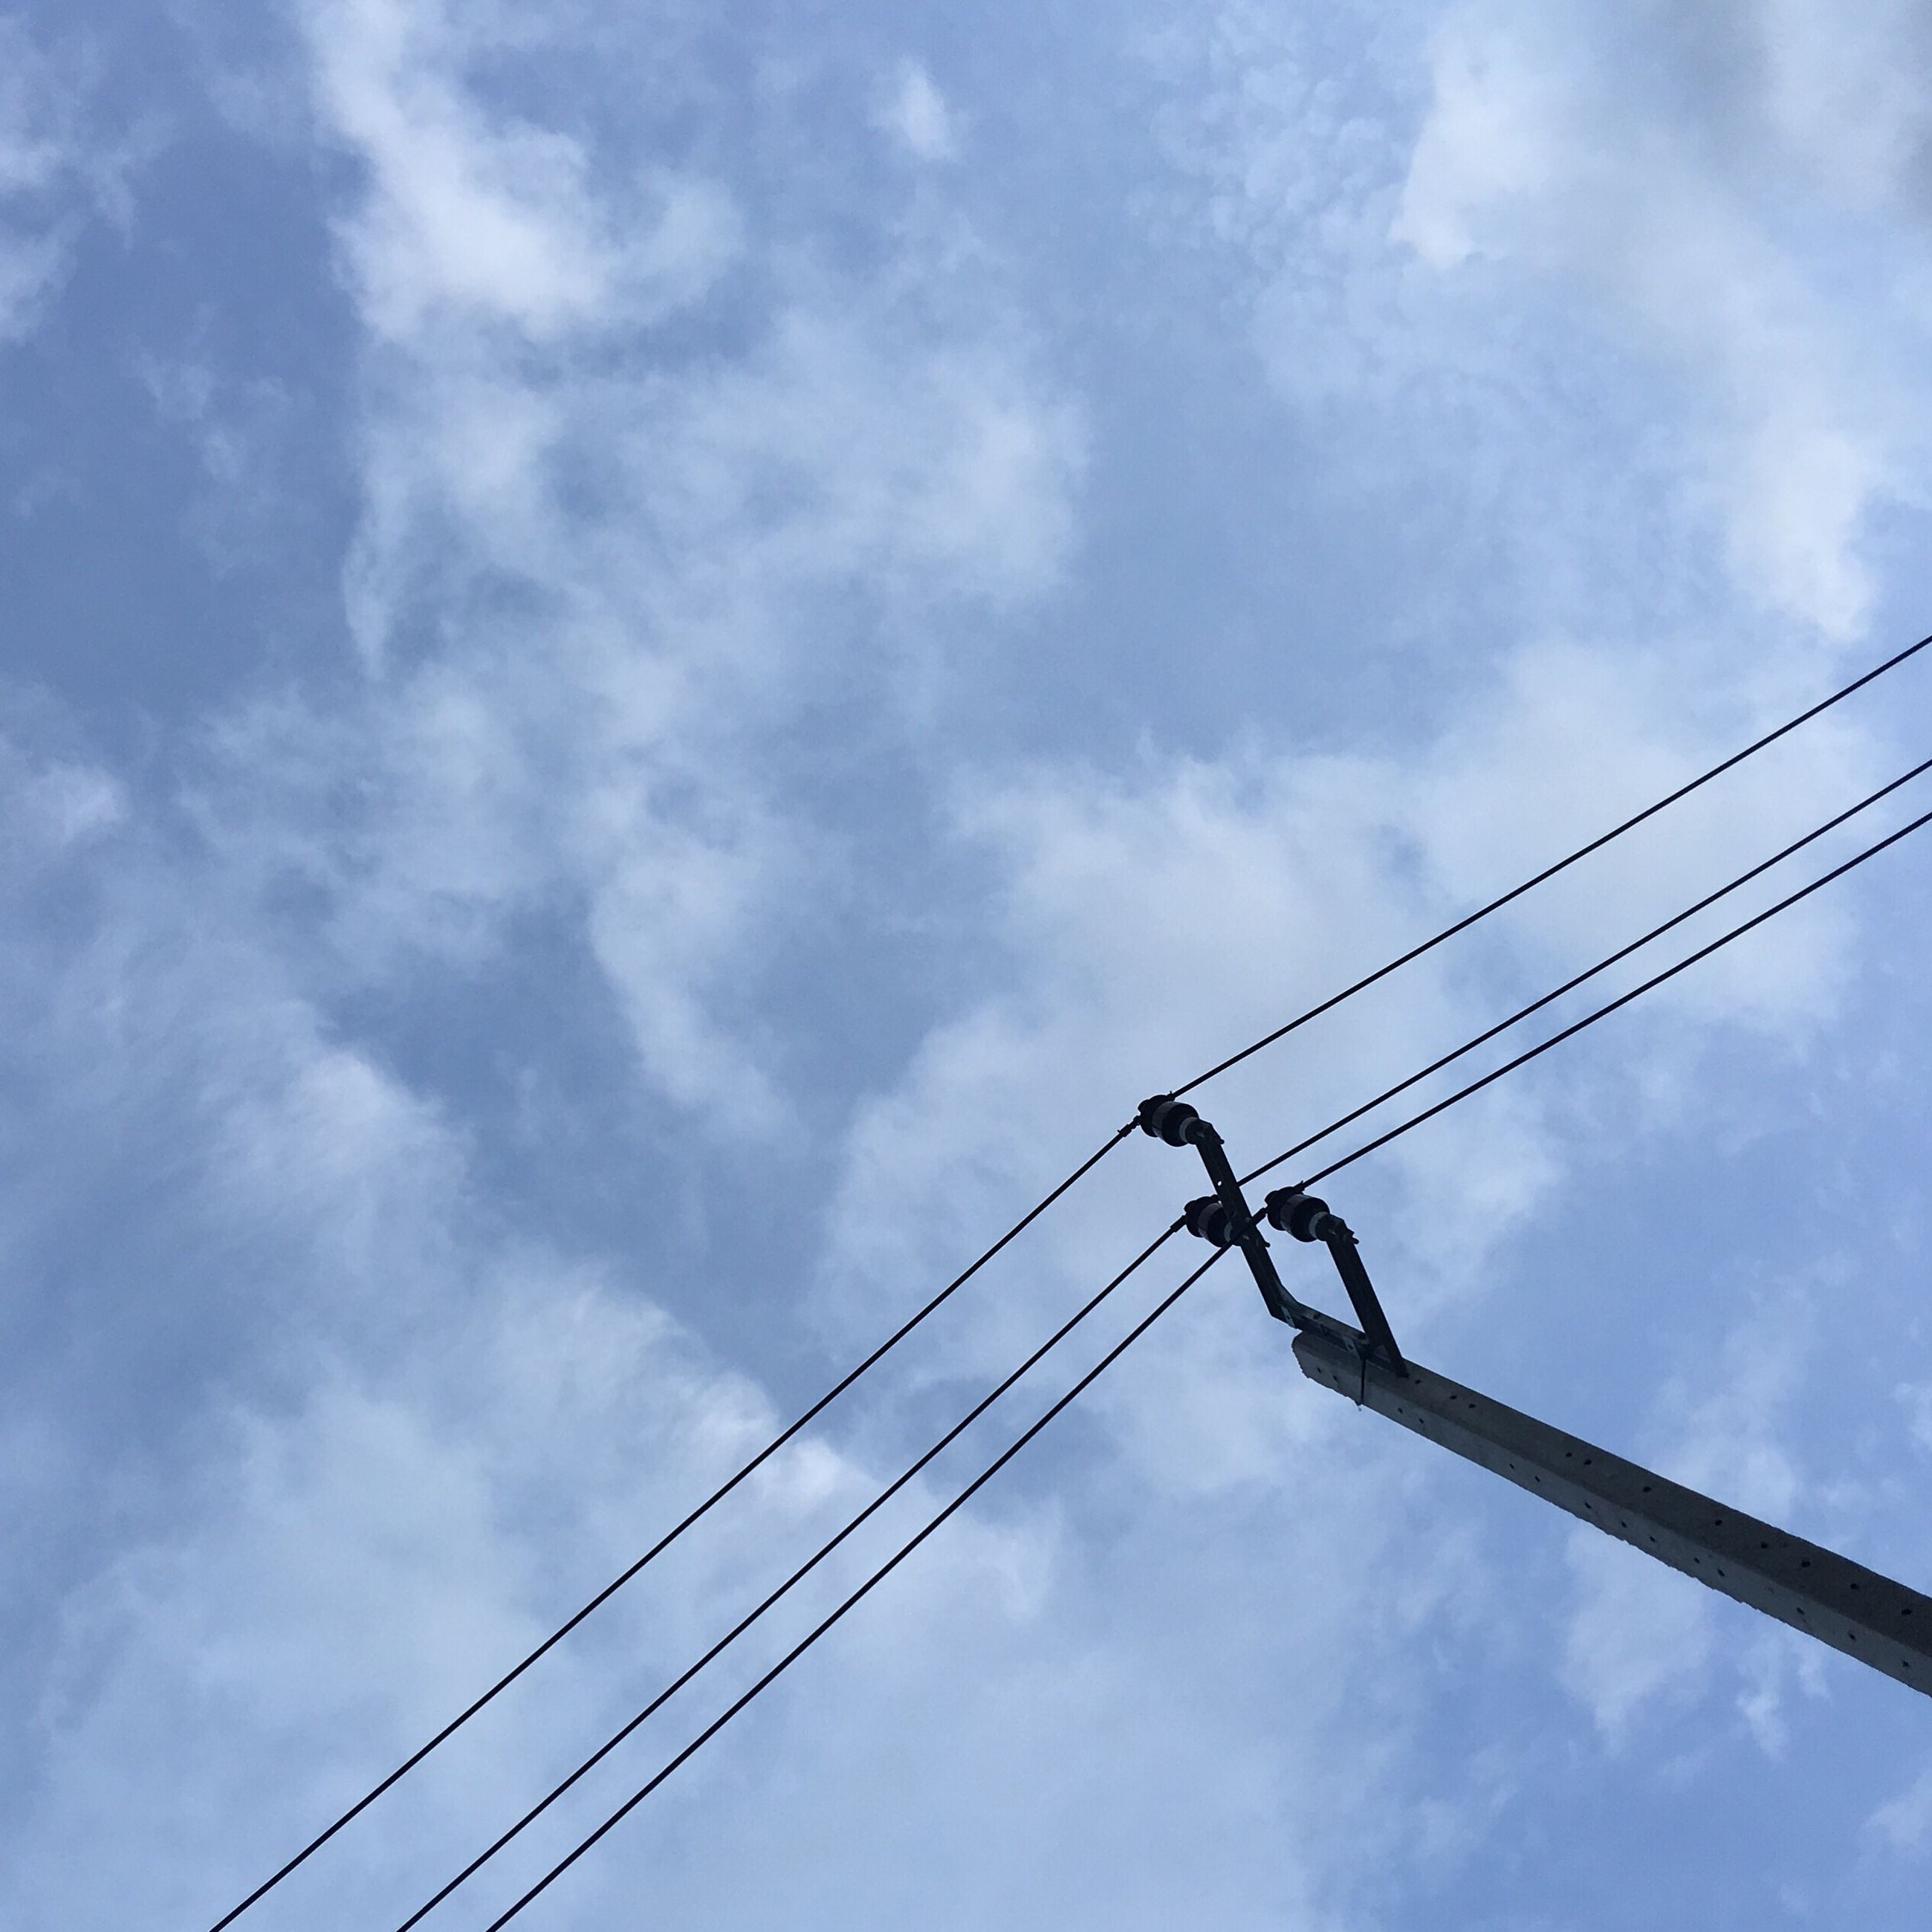 low angle view, connection, cable, power line, blue, sky, day, power supply, power cable, cloud, cloud - sky, nature, outdoors, long, tranquility, high section, no people, telephone line, cloudscape, cloudy, tranquil scene